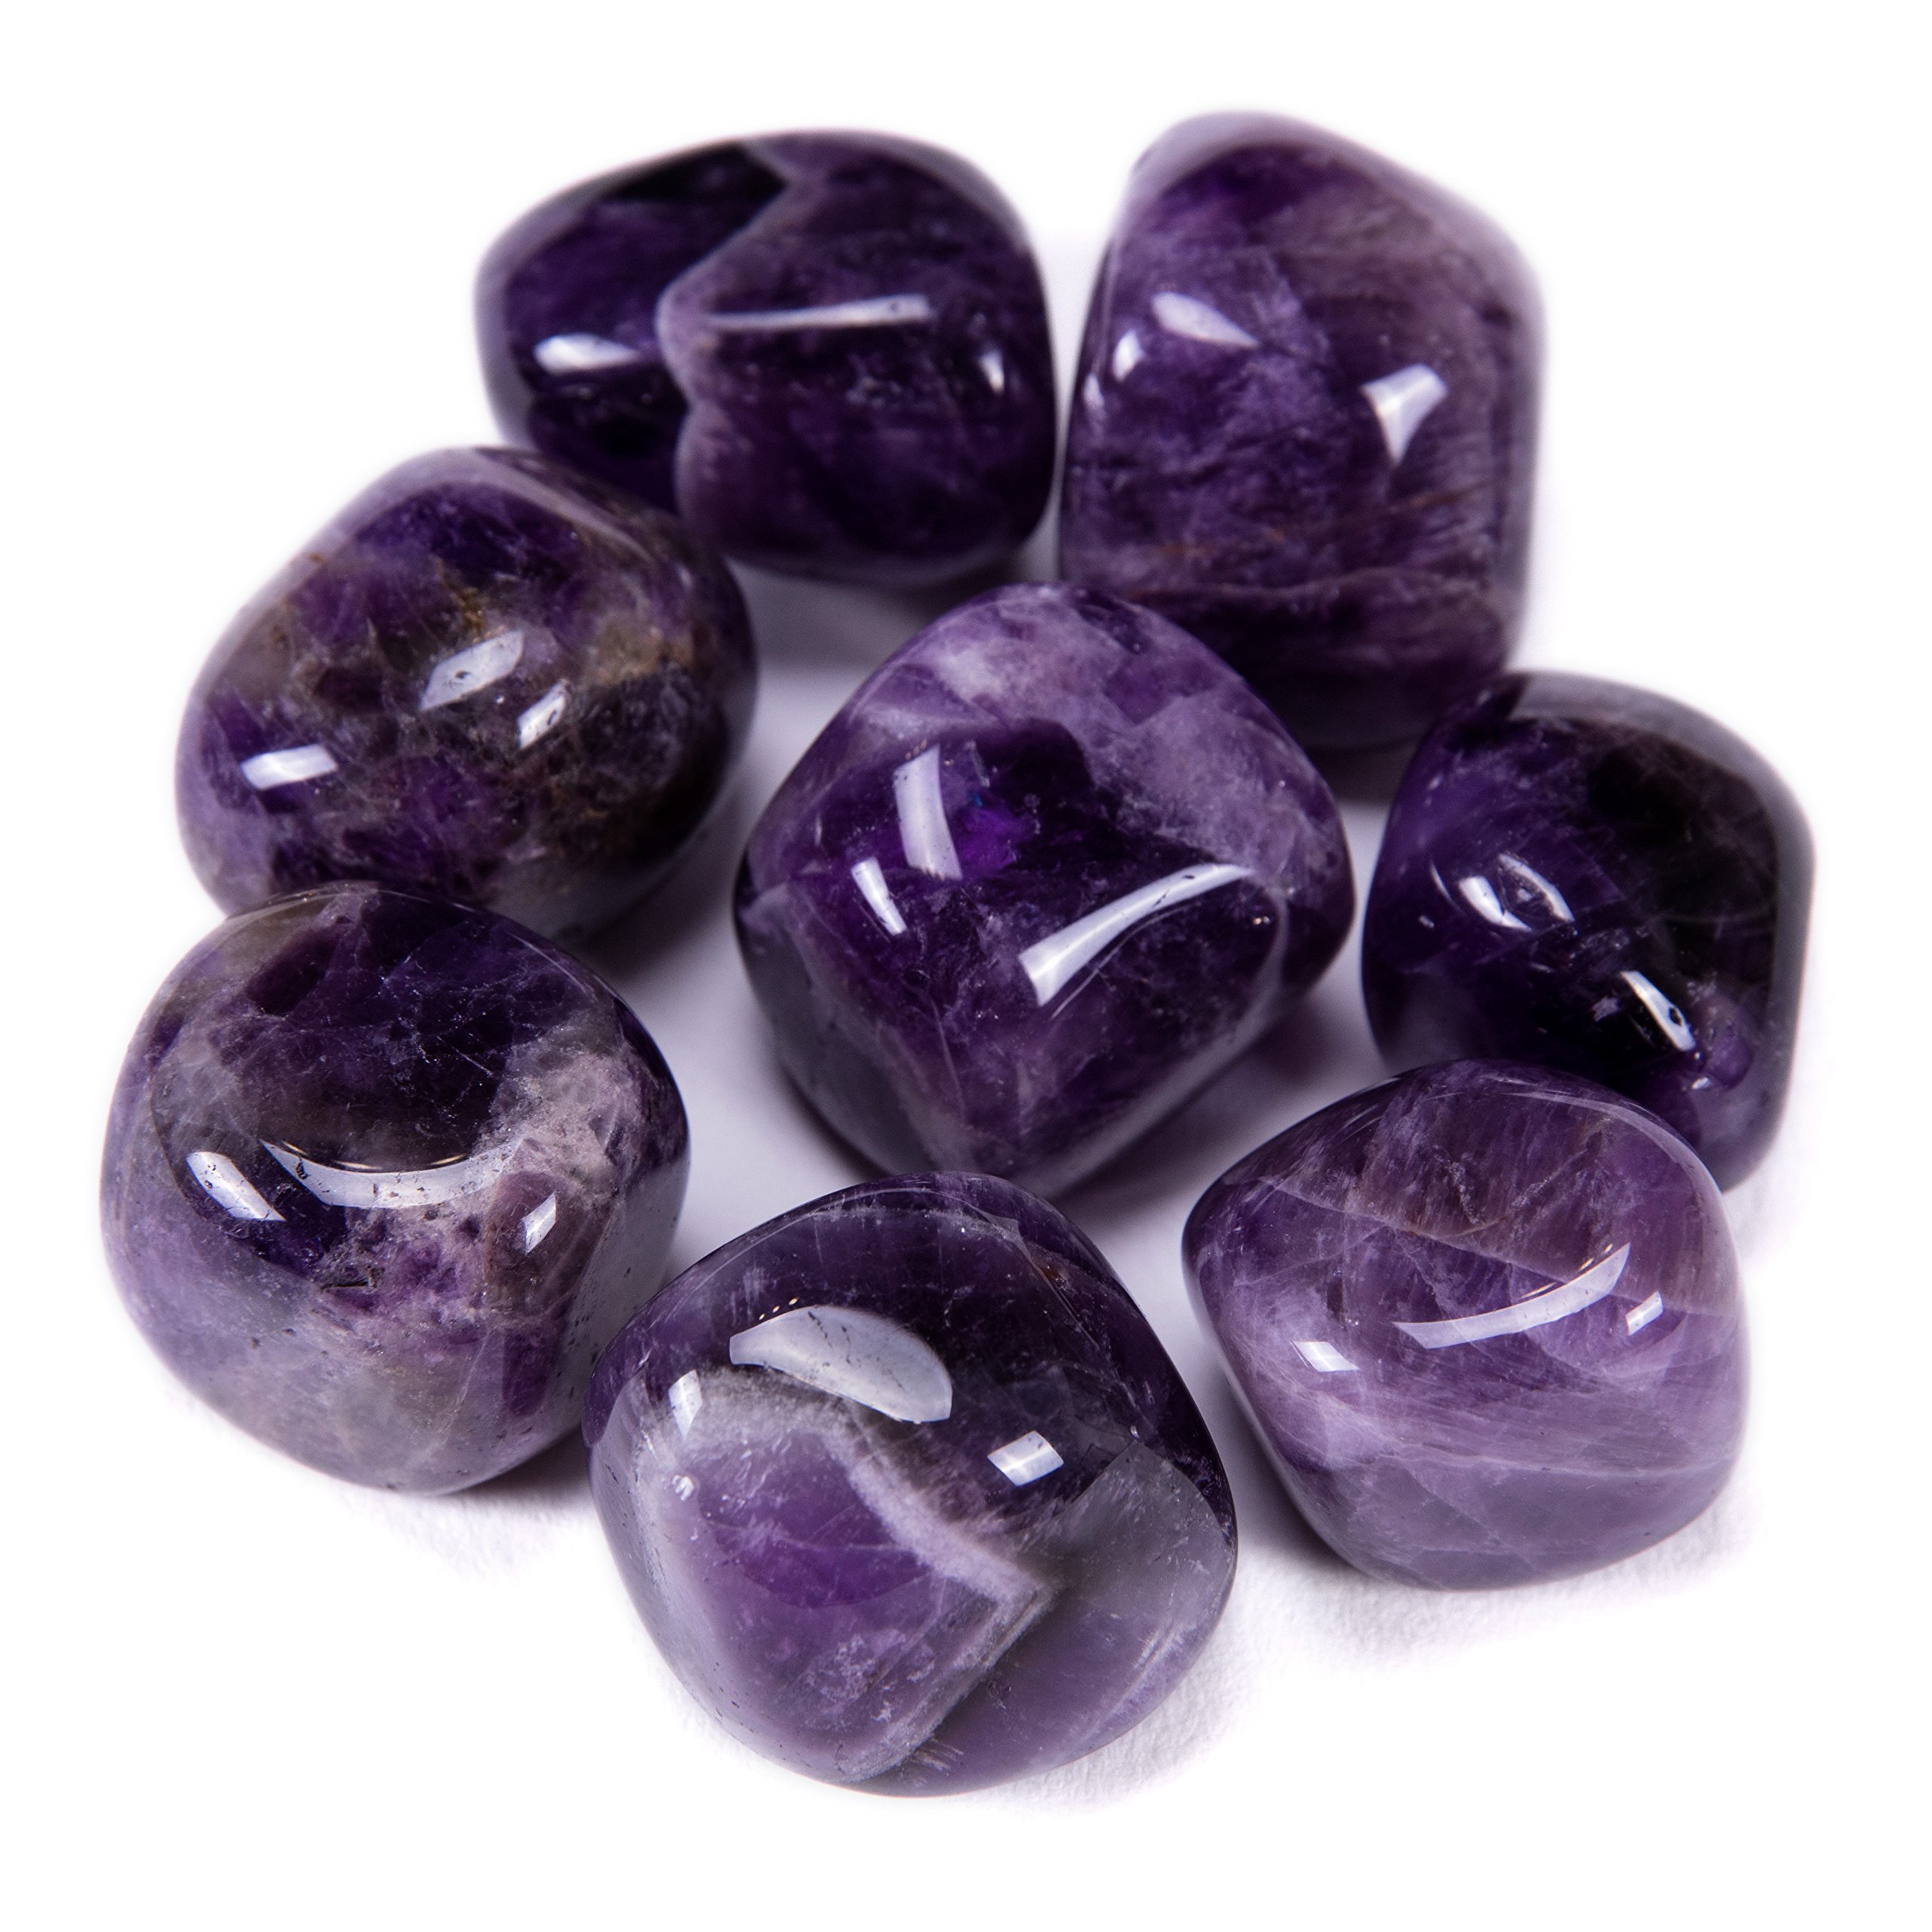 Bingcute Brazilian Tumbled Polished Natural Amethyst Stones 1/2 Ib For Wicca, Reiki, and Energy Crystal Healing (Amethyst) by Bingcute